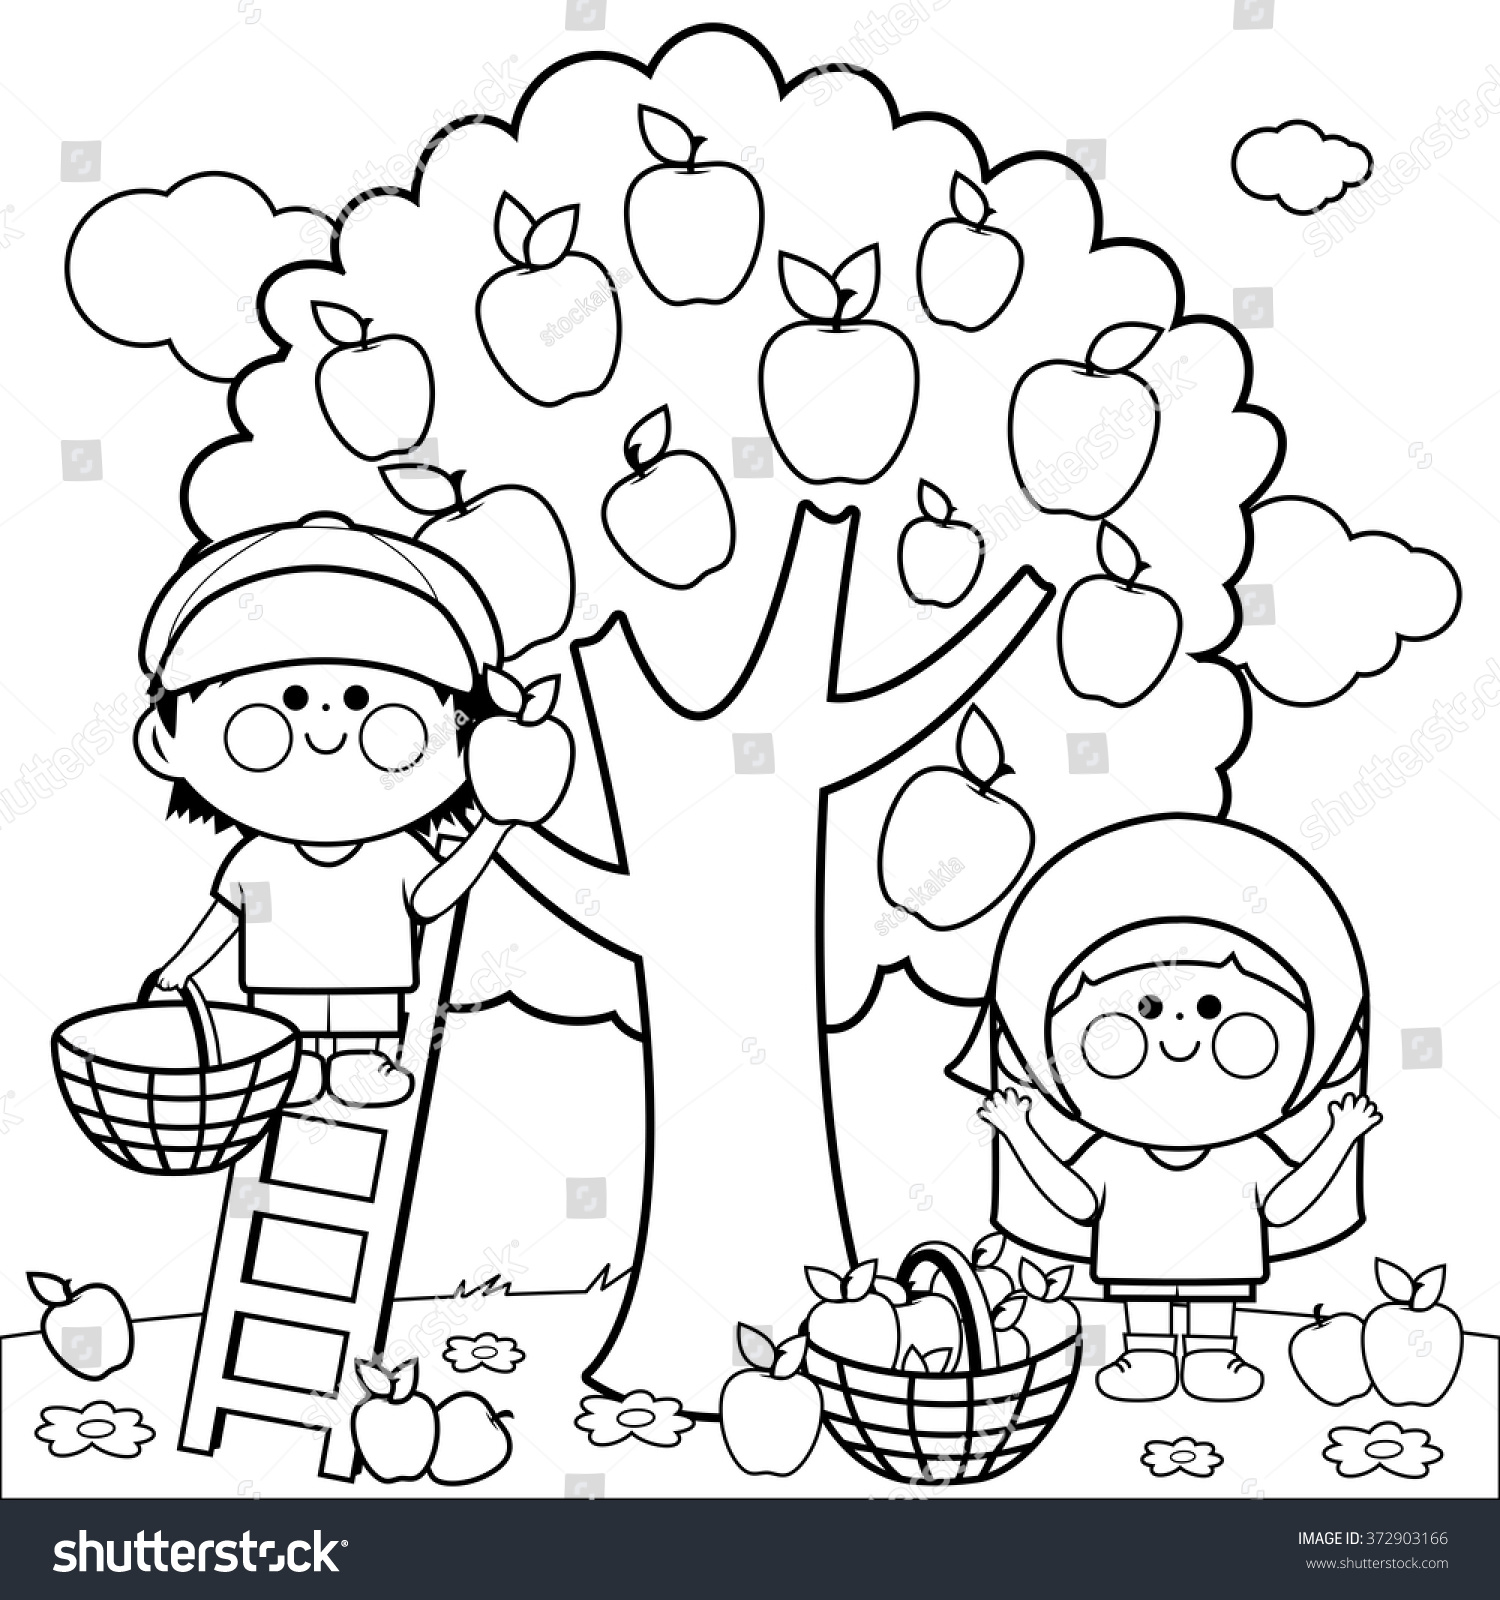 Children Picking Apples Coloring Book Page